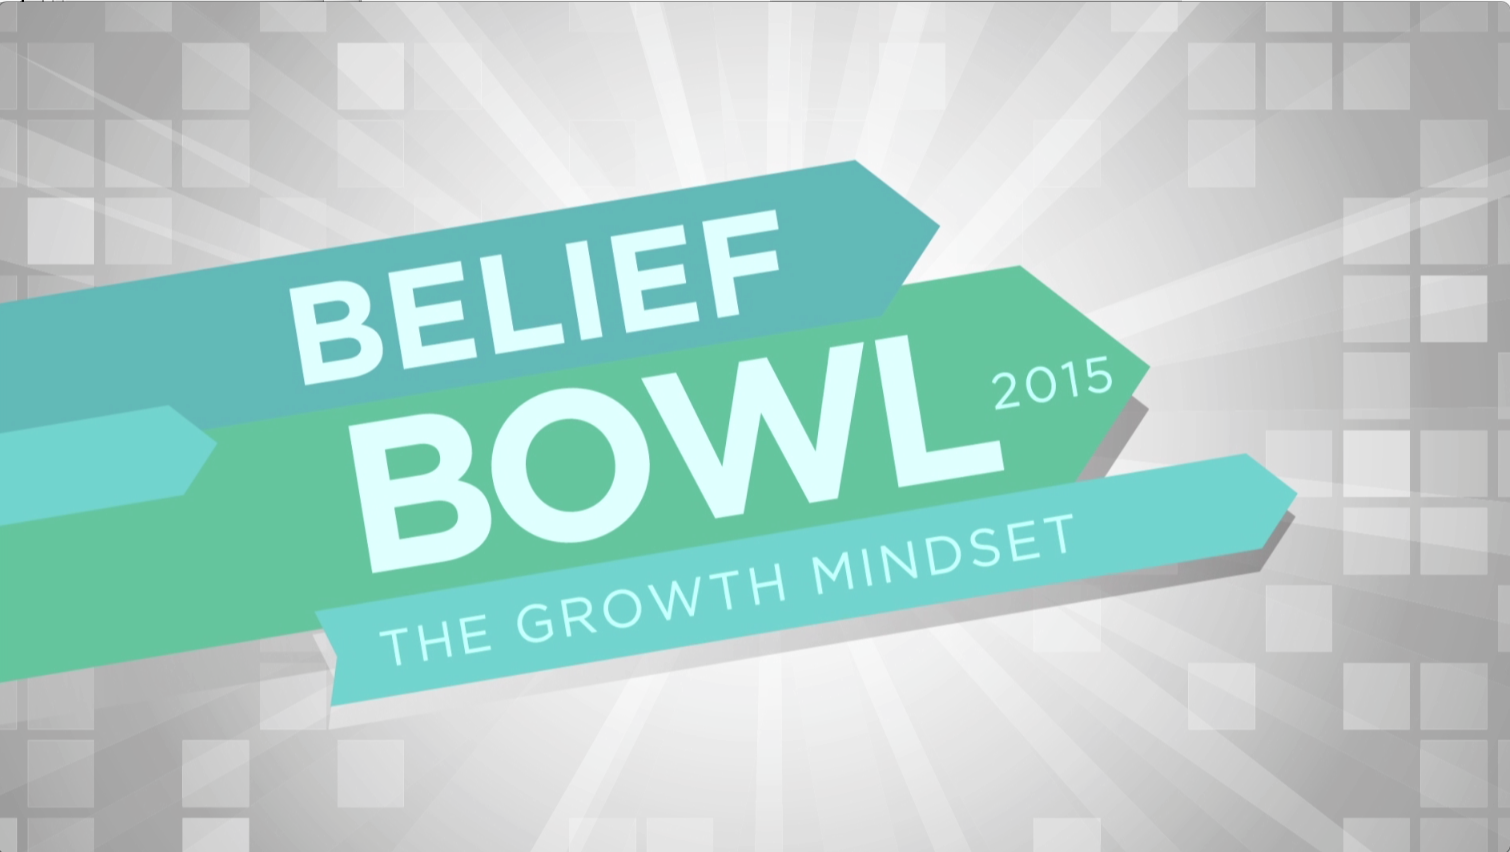 Belief Bowl 2015: The Growth Mindset